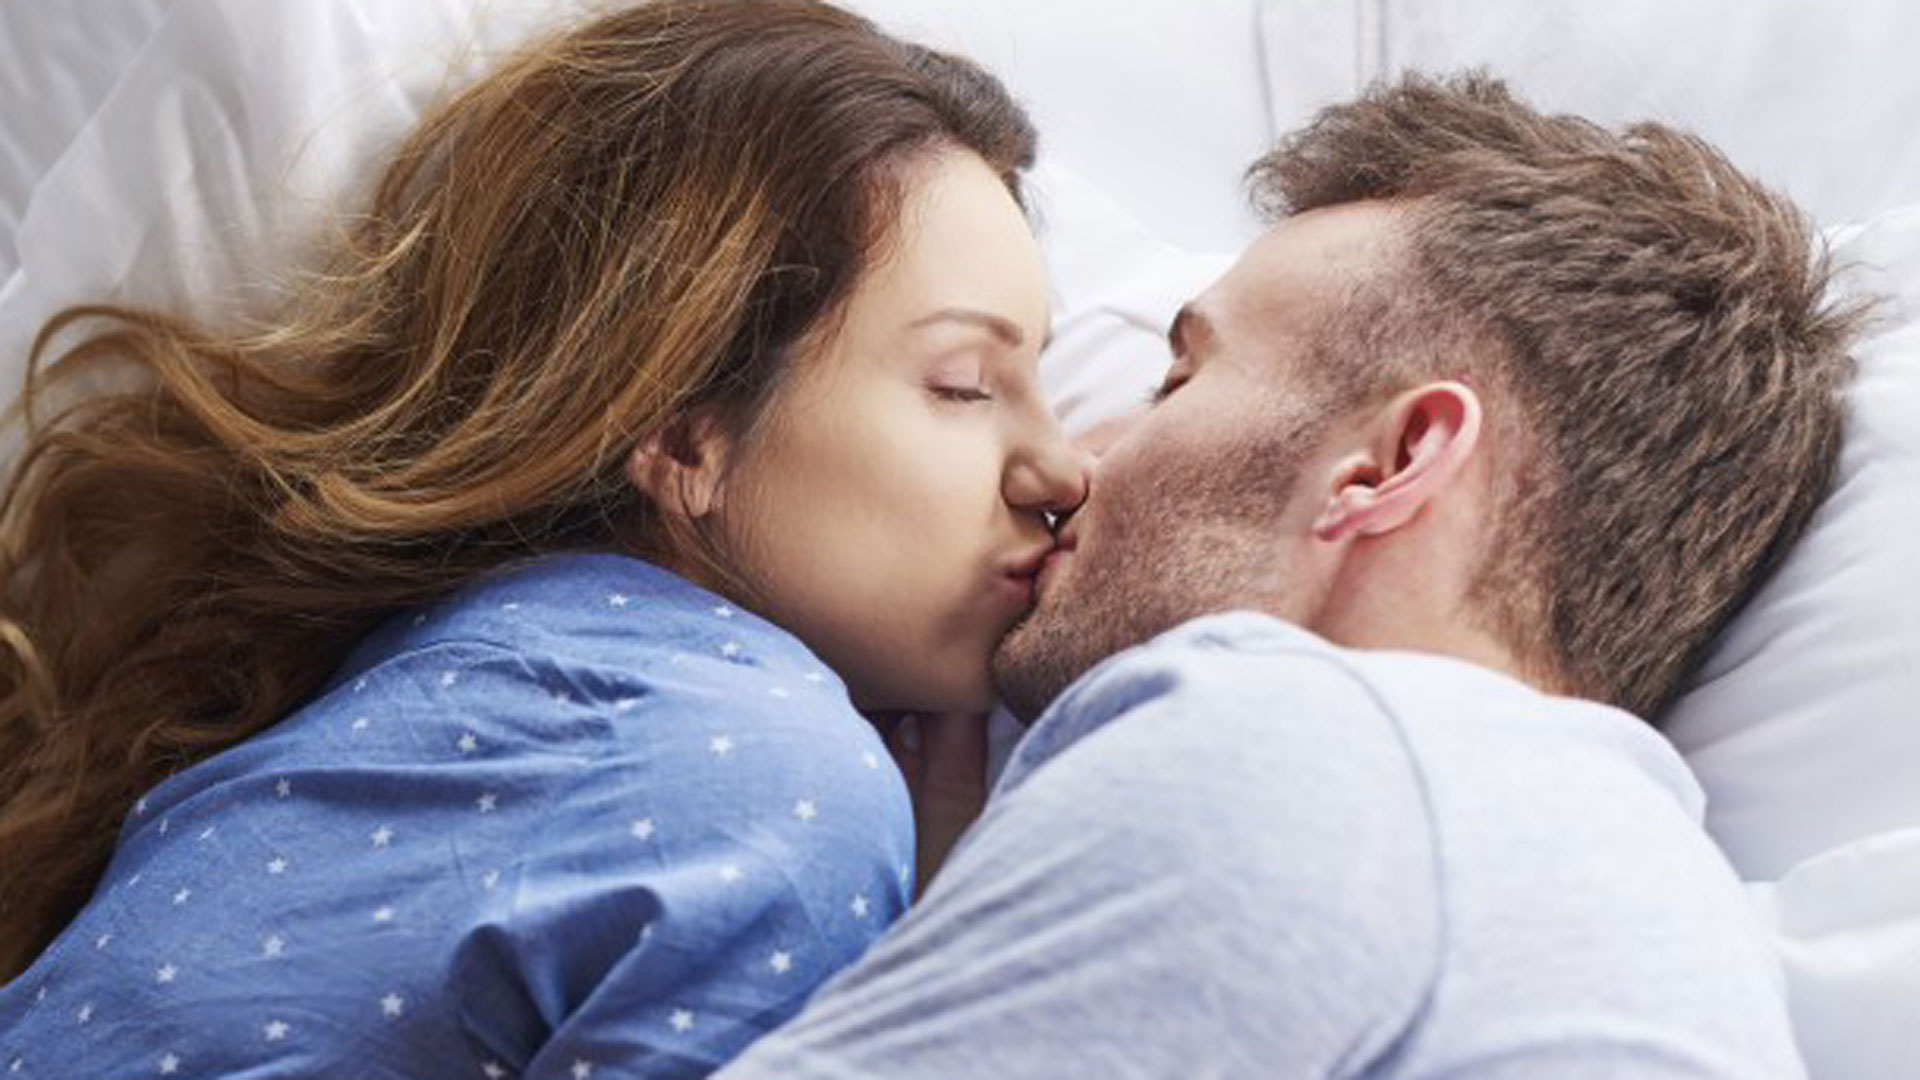 kissing images